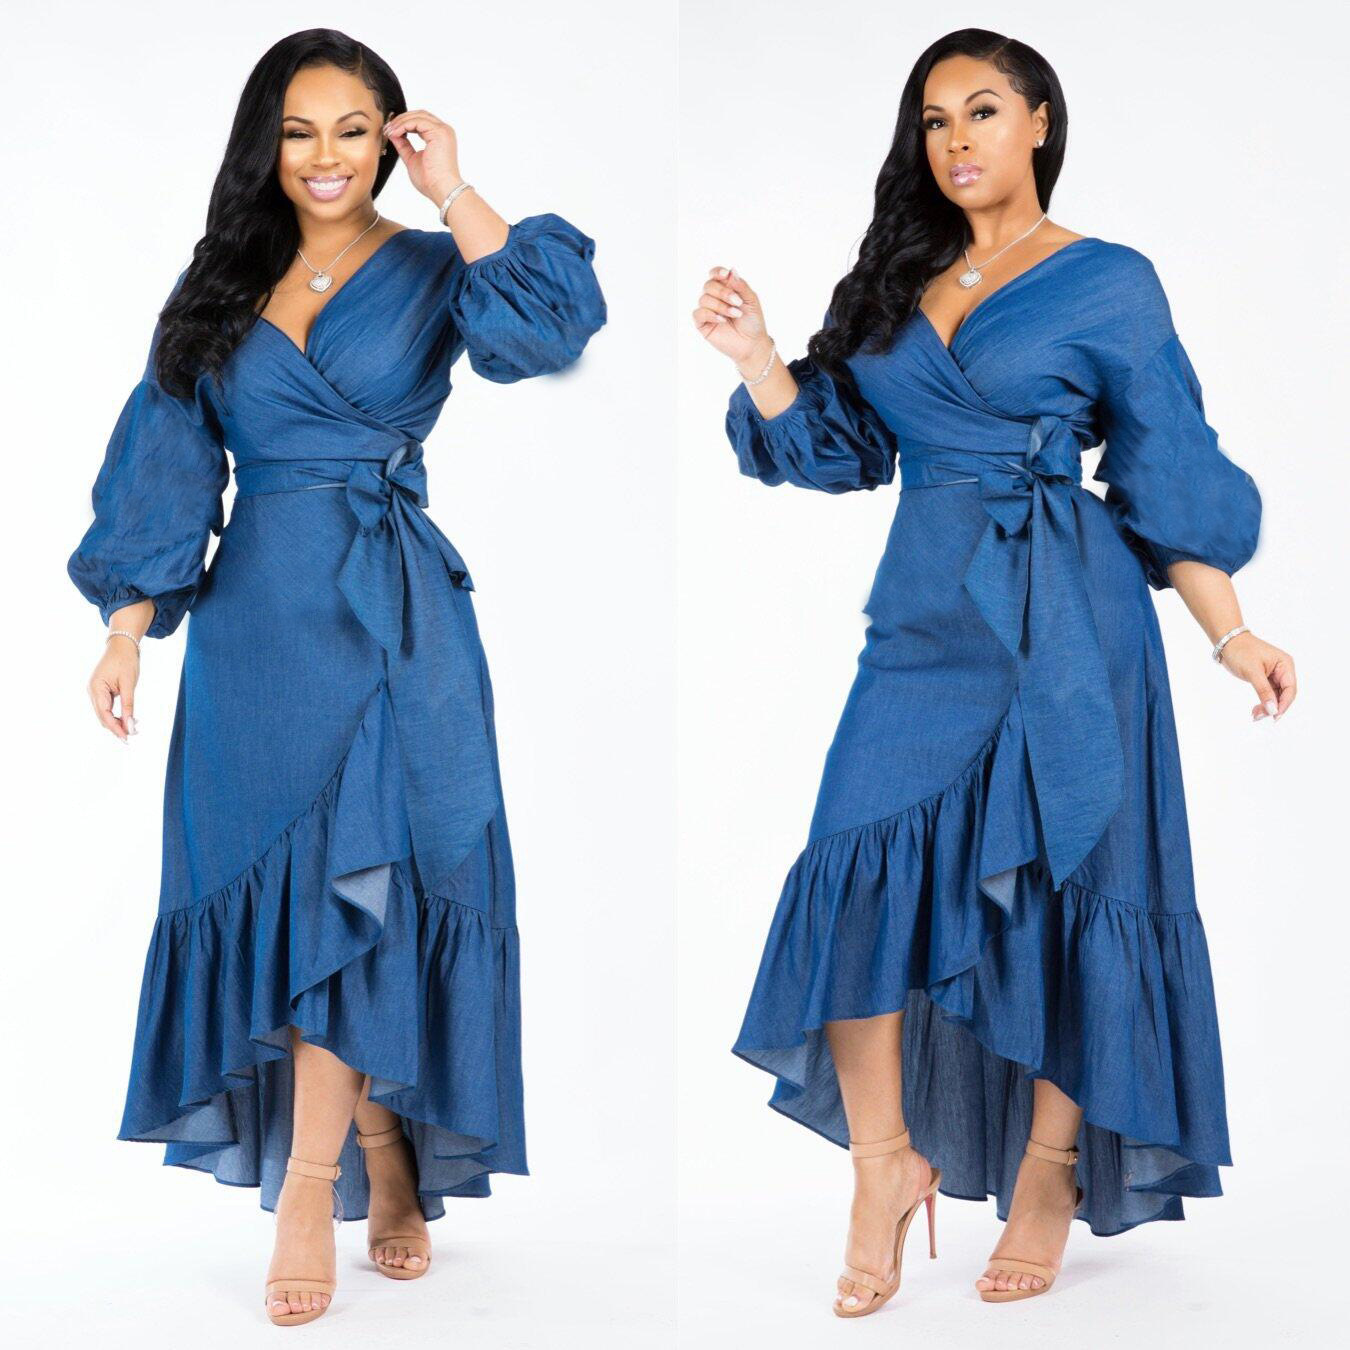 2019 Women Denim Lantern Long Sleeve V-Neck High Waist Belts Ruffle Hem Vintage Maxi Dress Long Dresses DF0617